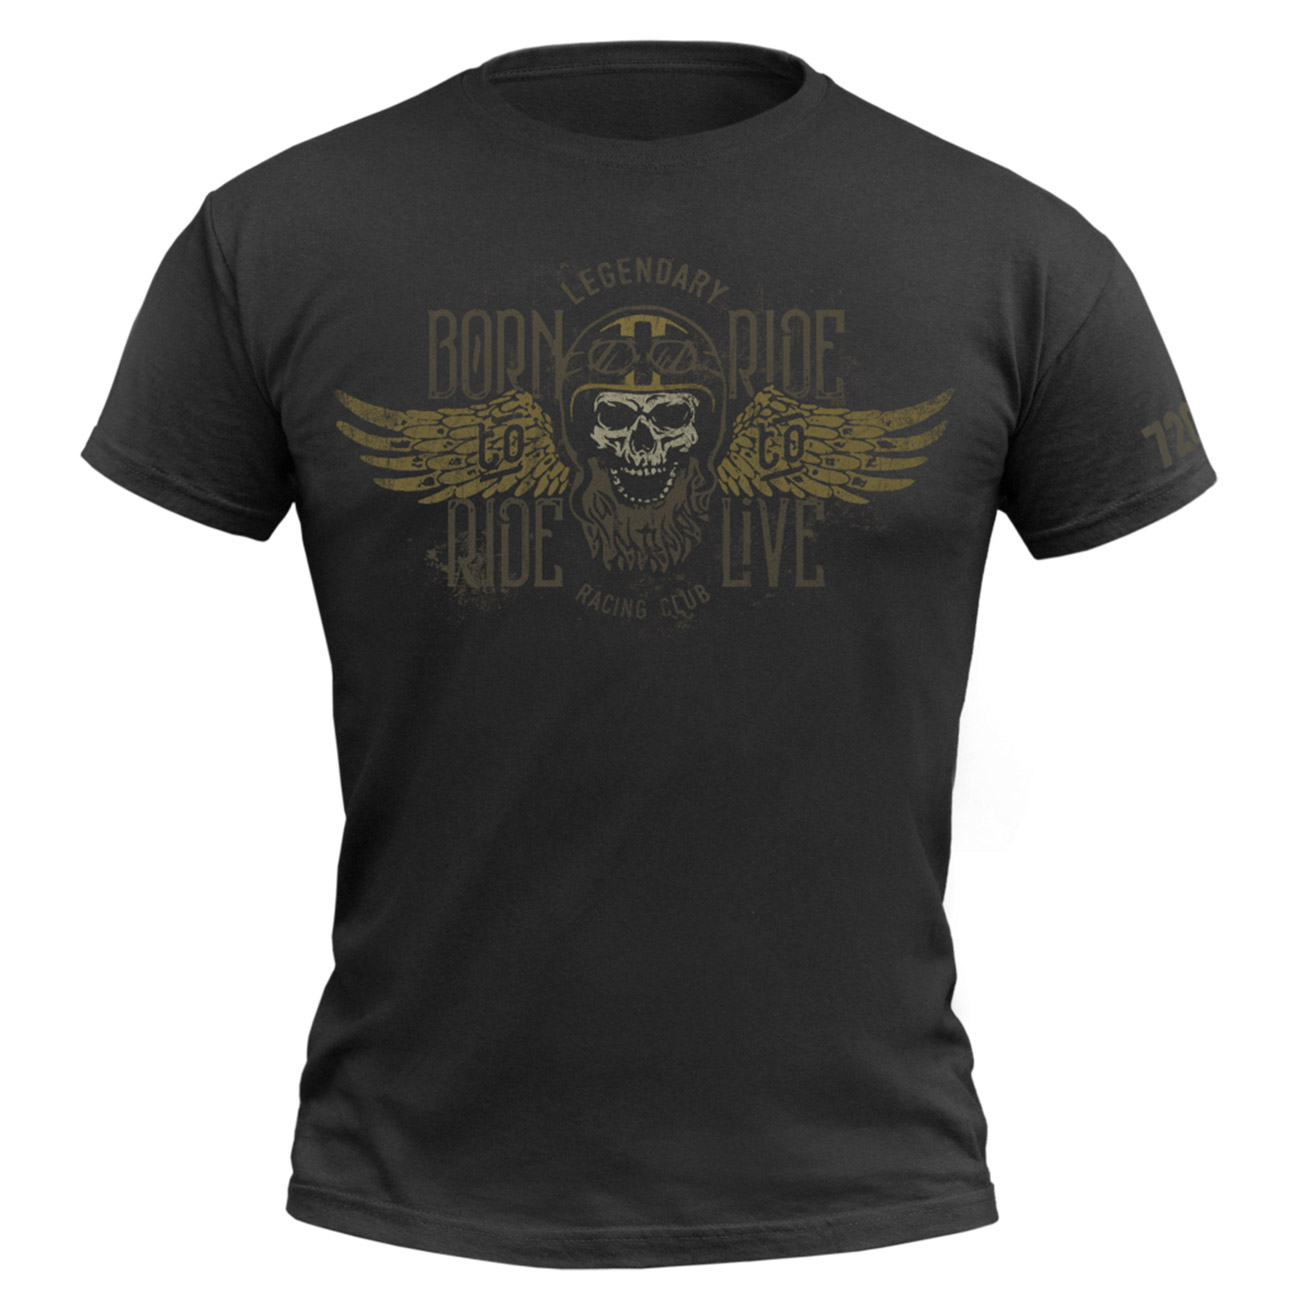 720gear T-Shirt Born to Ride 0